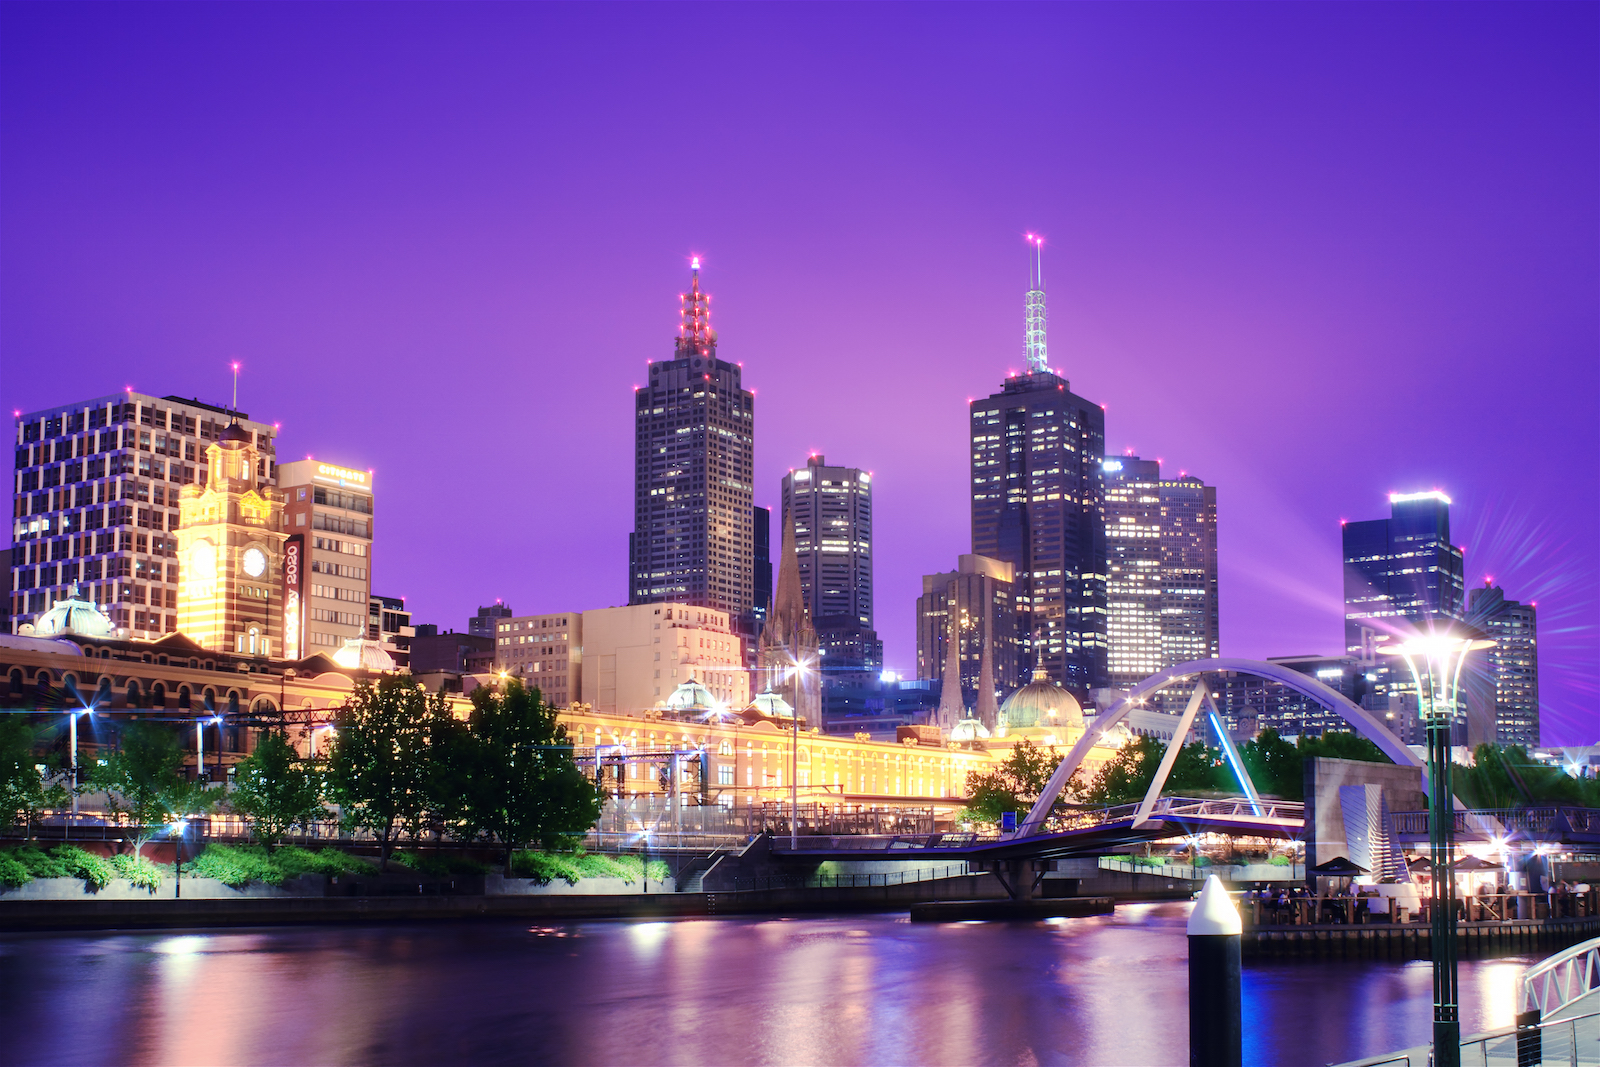 Melbourne skyline view at night